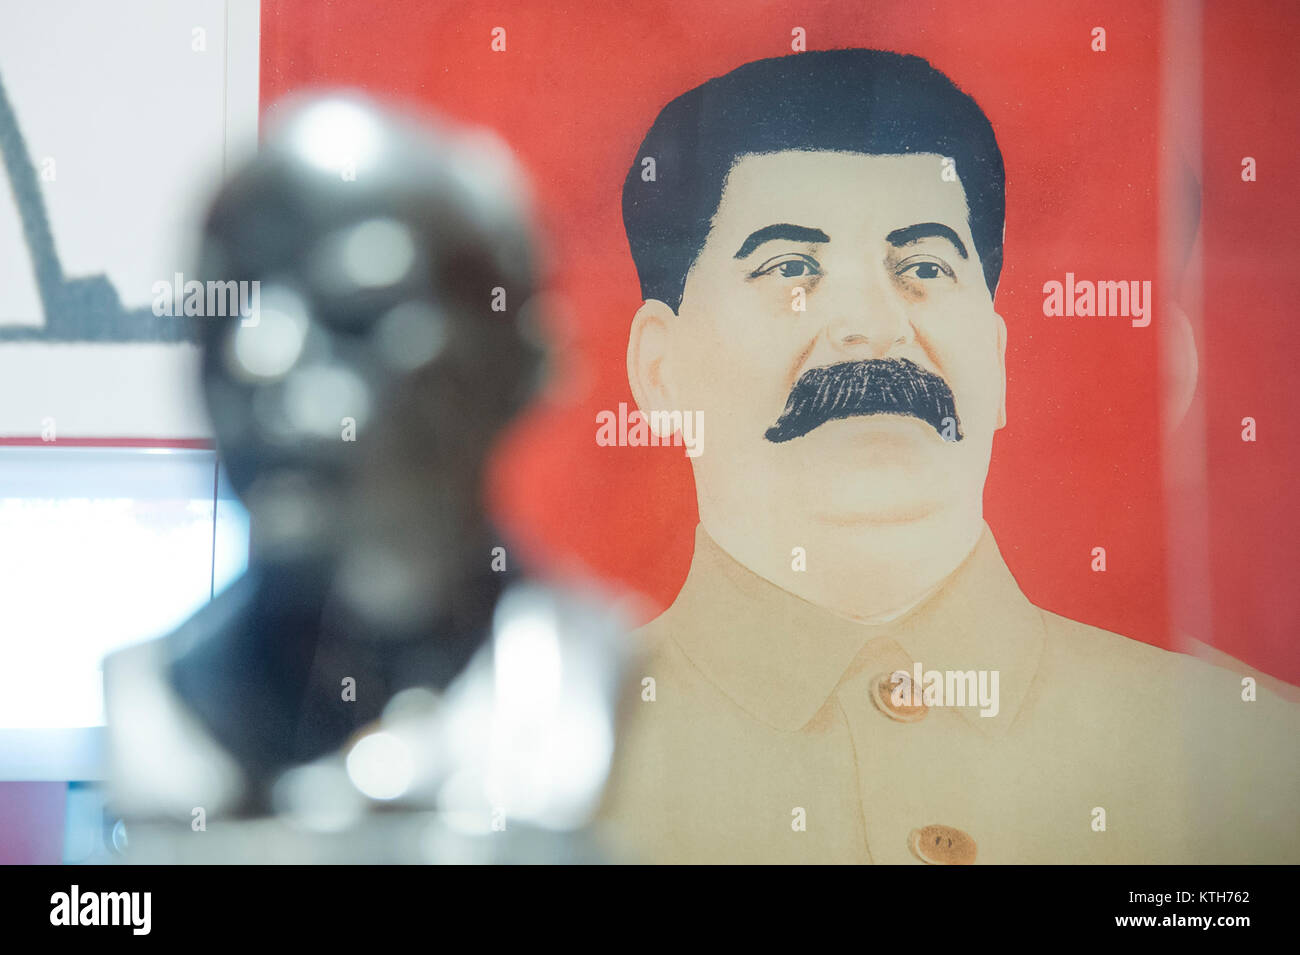 an analysis of stalin political plan of socialism and his defeat of the german army Upon stalin's death in 1953, he was simultaneously one of the most revered and feared political leaders in modern times, and the influence of his shadow remains strong in russia even today before the russian revolution of 1917, stalin was a bolshevik operative in the causacus, organising resistance against the tsar.